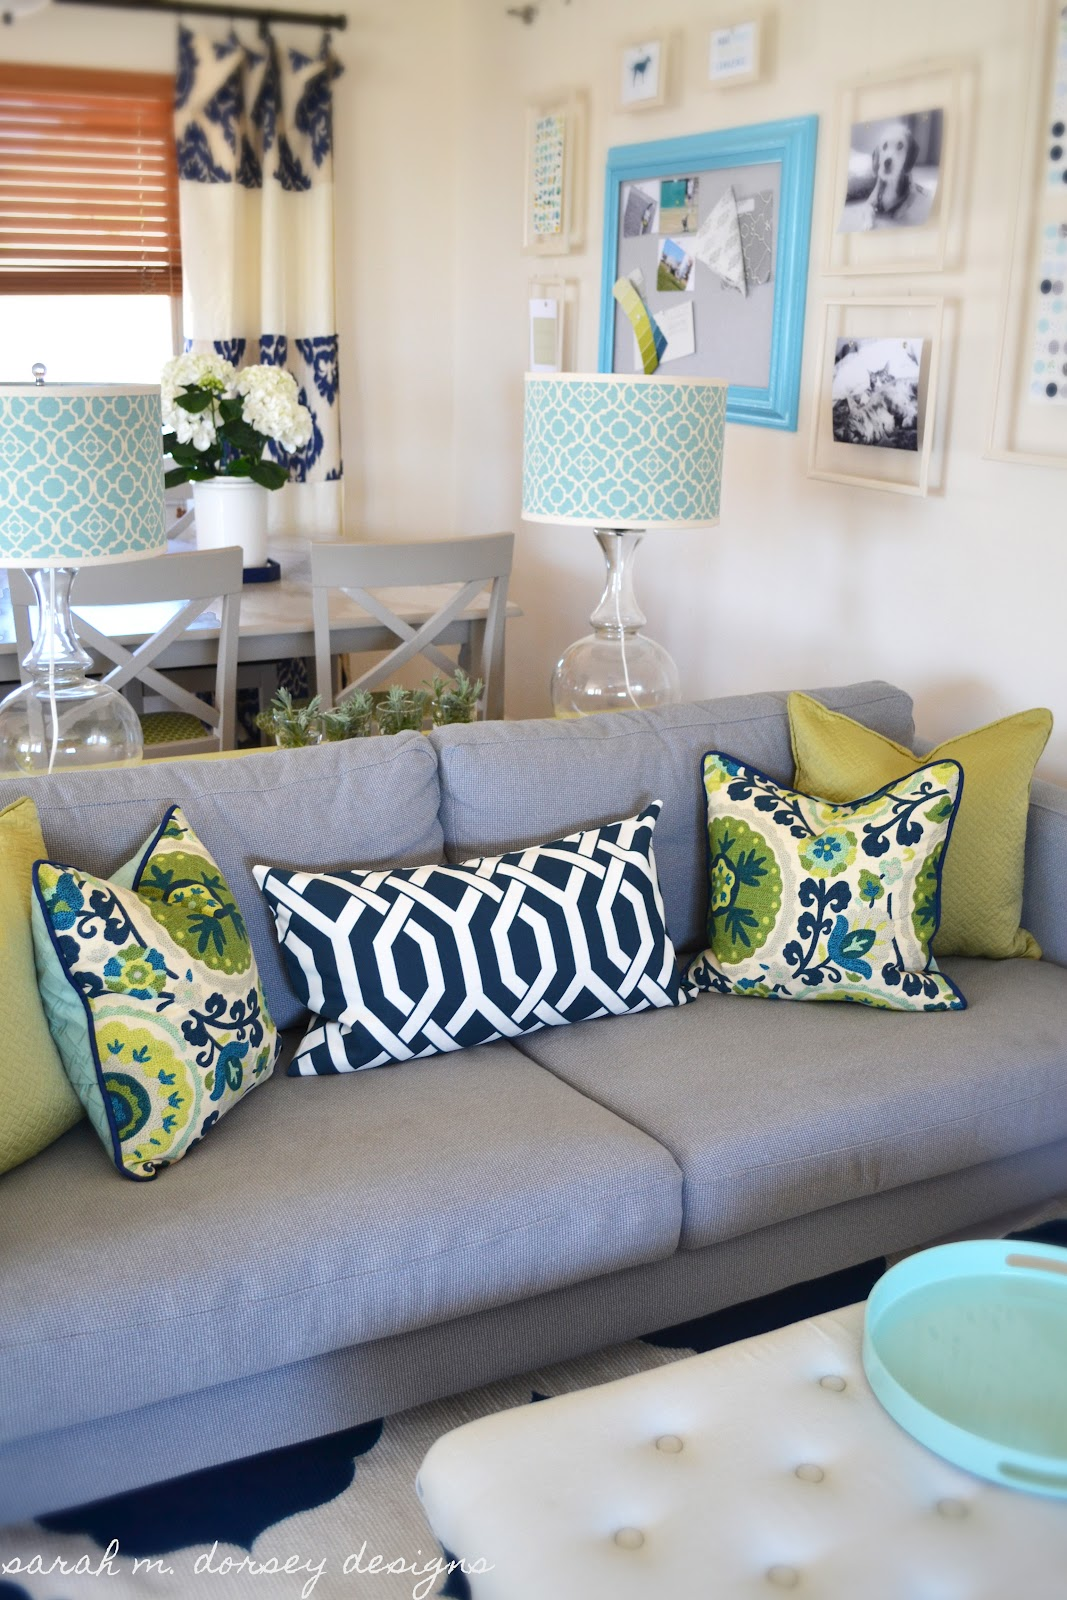 sarah m. dorsey designs: Pillow Shams for the Living Room